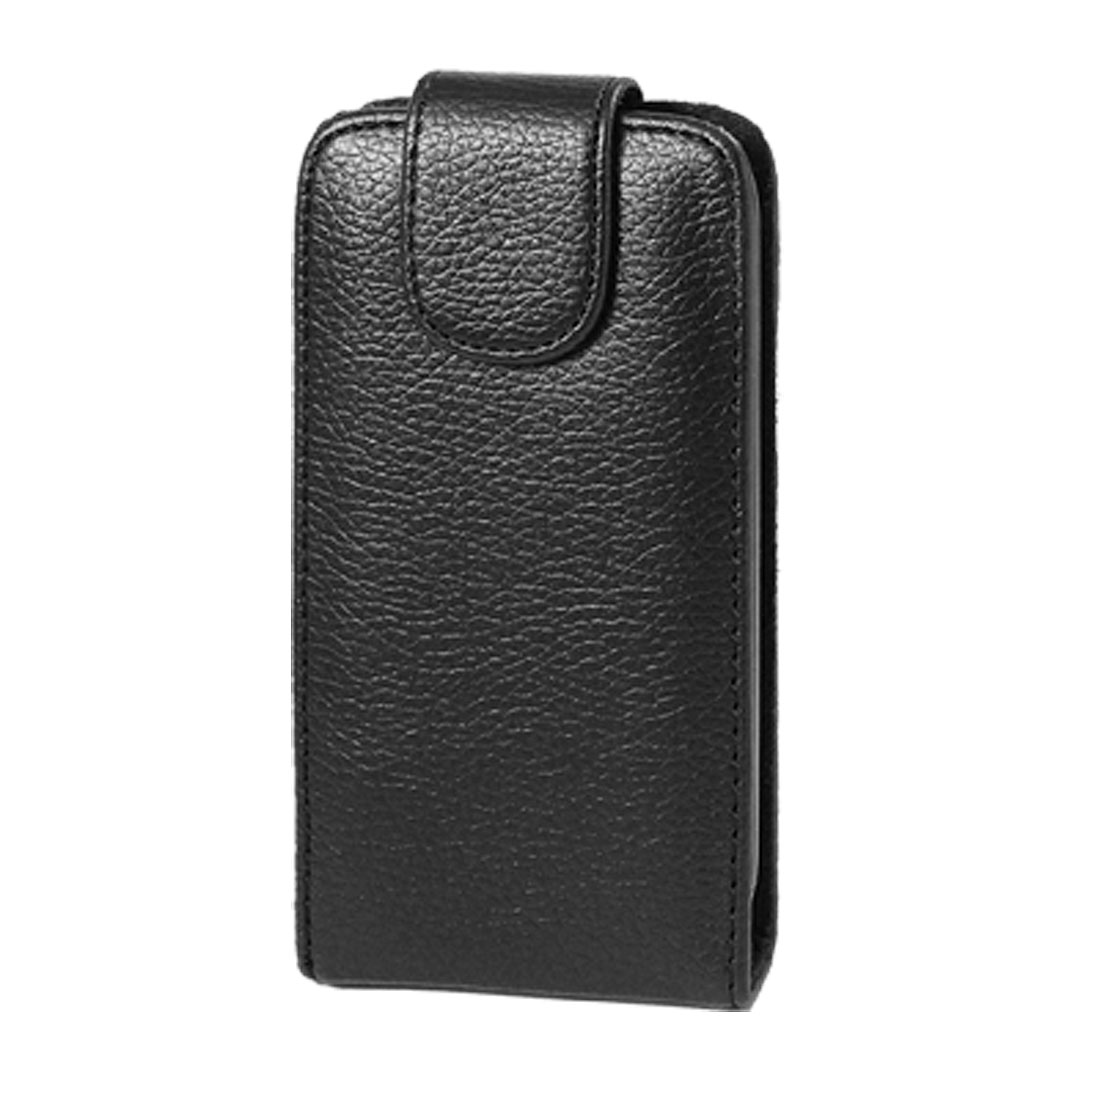 Black Textured Faux Leather Magnetic Closure Pouch Case for iPhone 3G